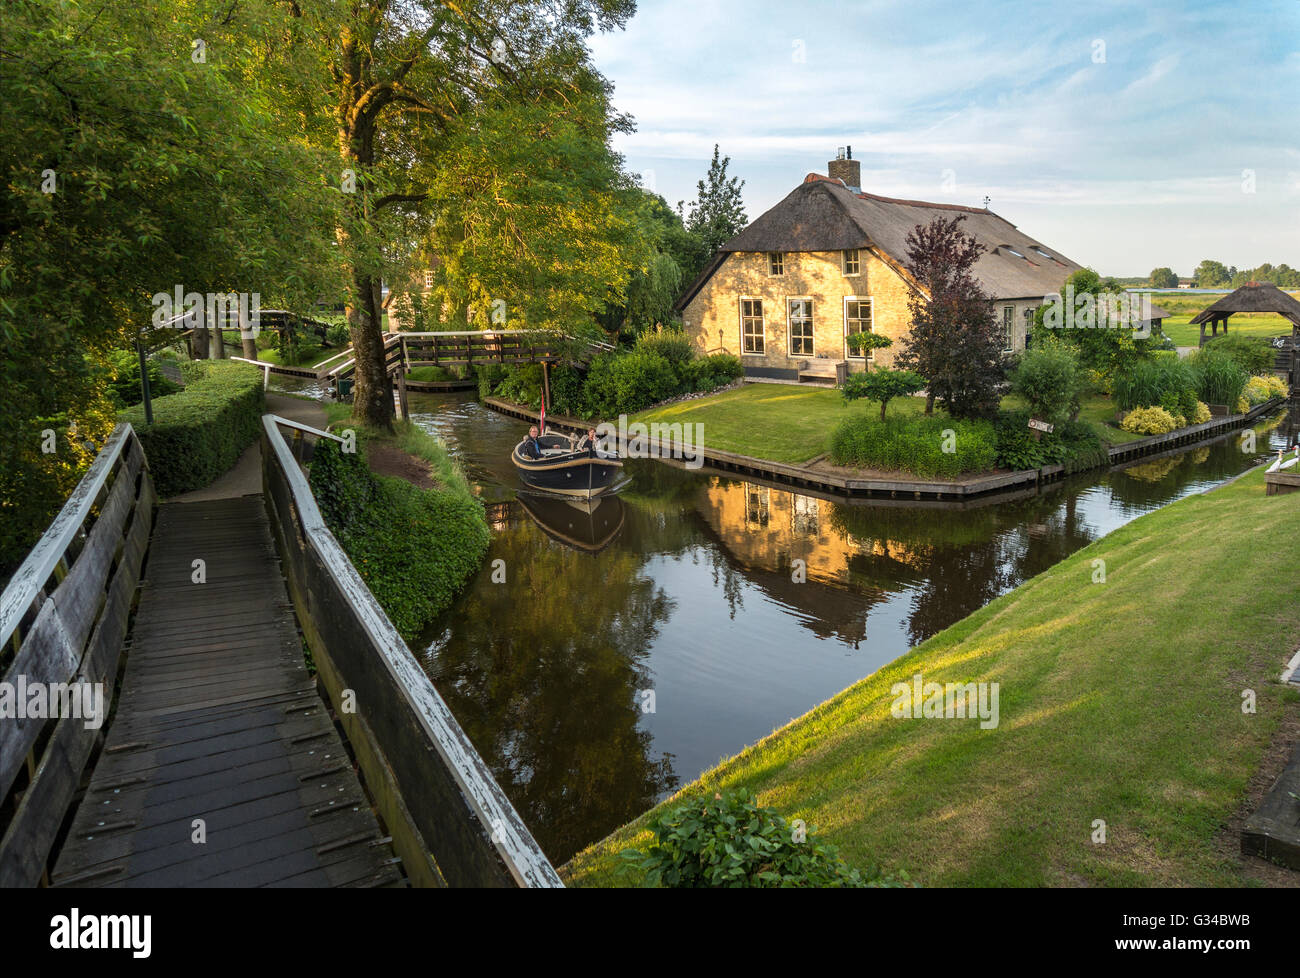 Giethoorn, Netherlands. Boat in the Dorpsgracht or Village Canal with converted farmhouse on island with private - Stock Image